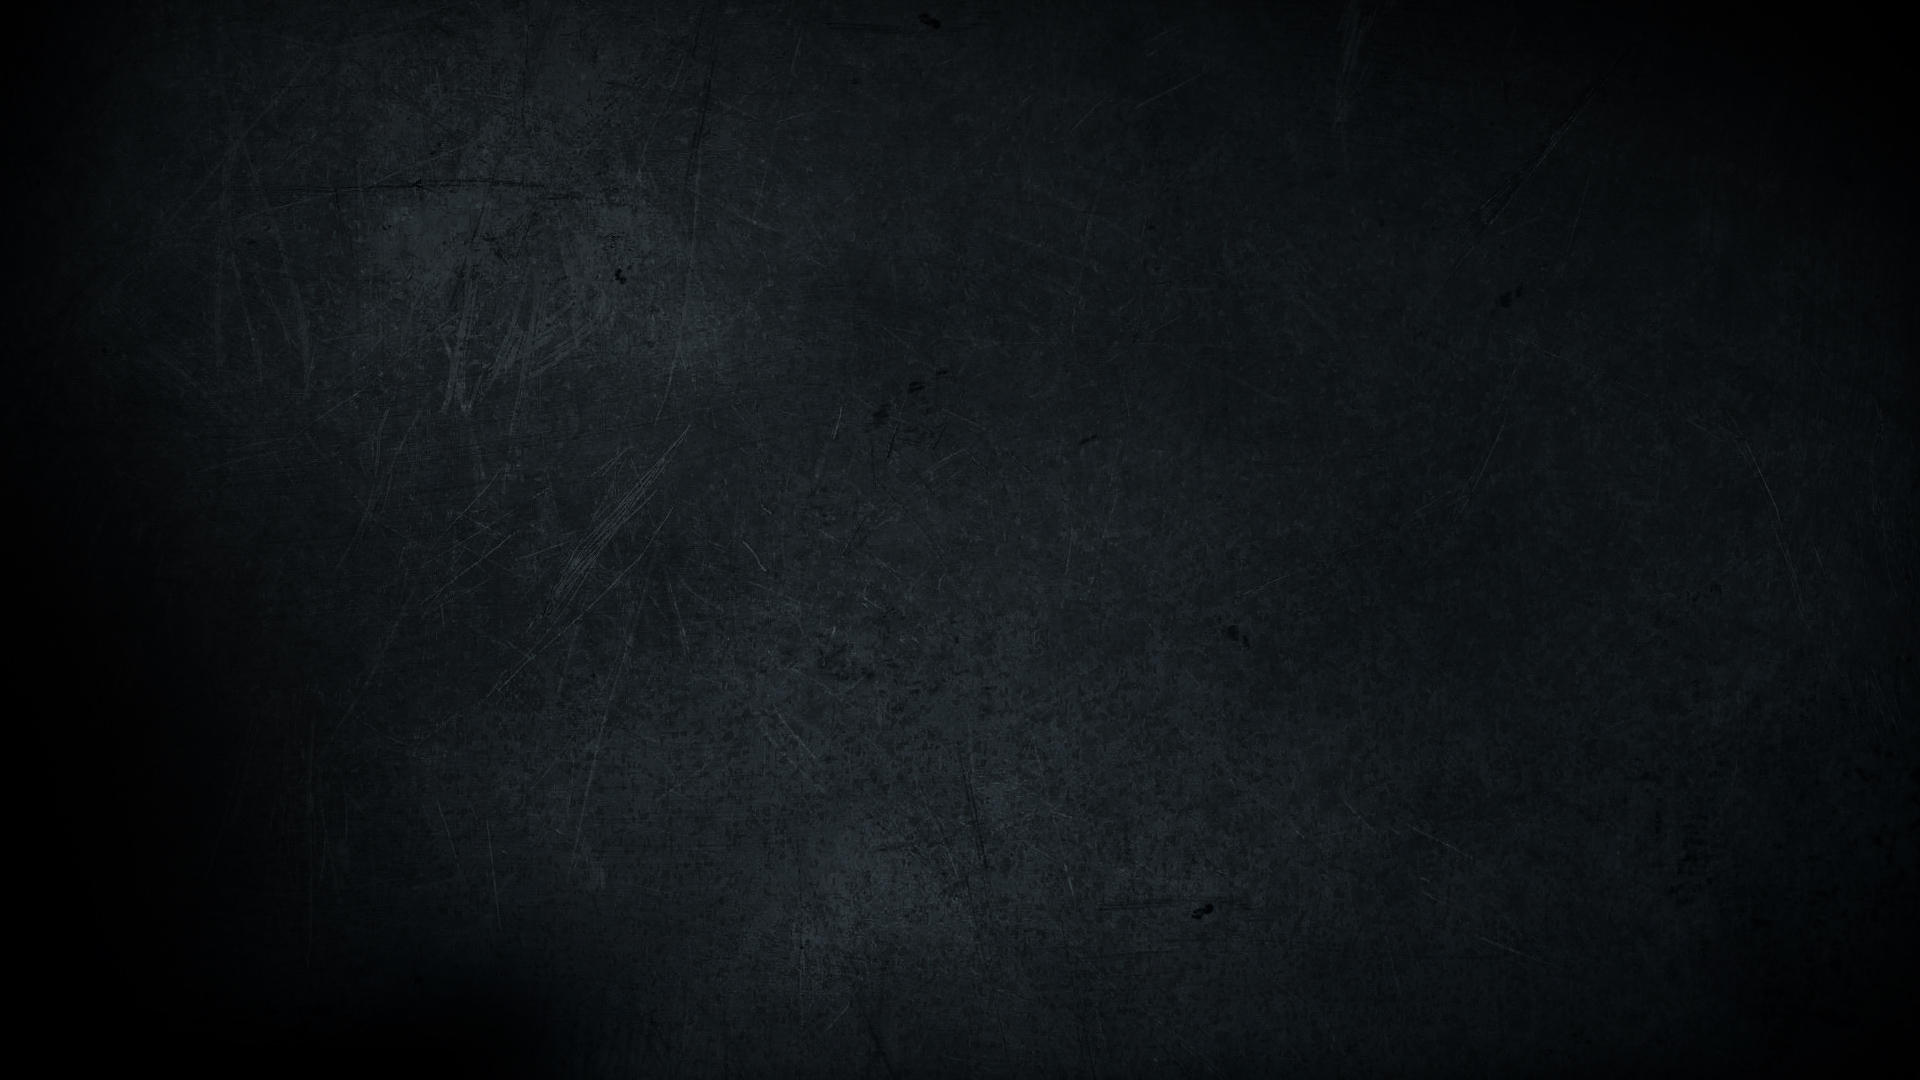 Minimalist Metal Wallpaper by malkowitch